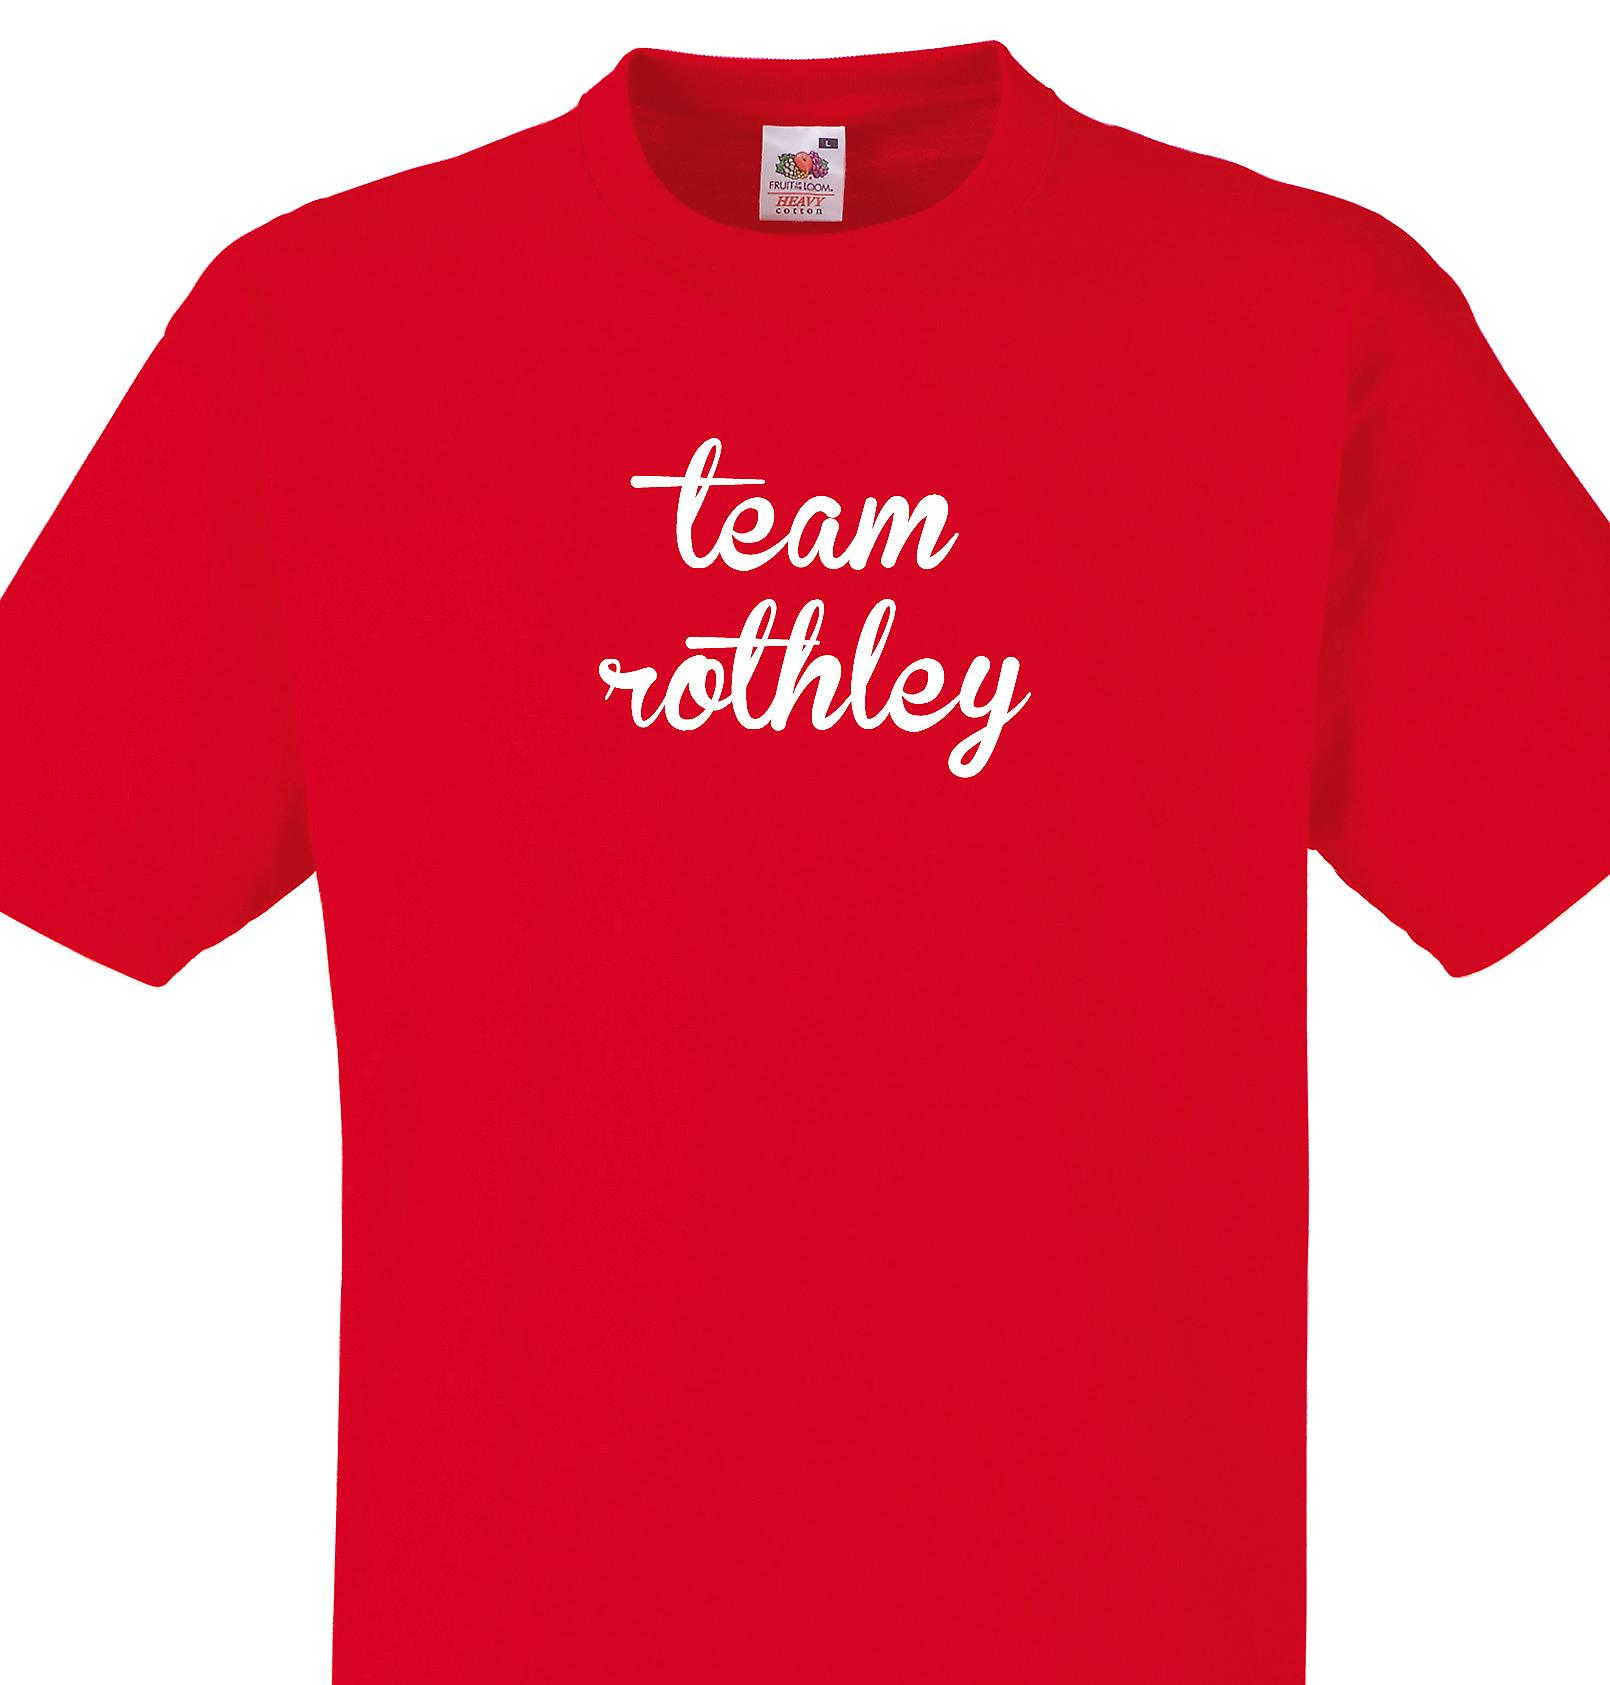 Team Rothley Red T shirt